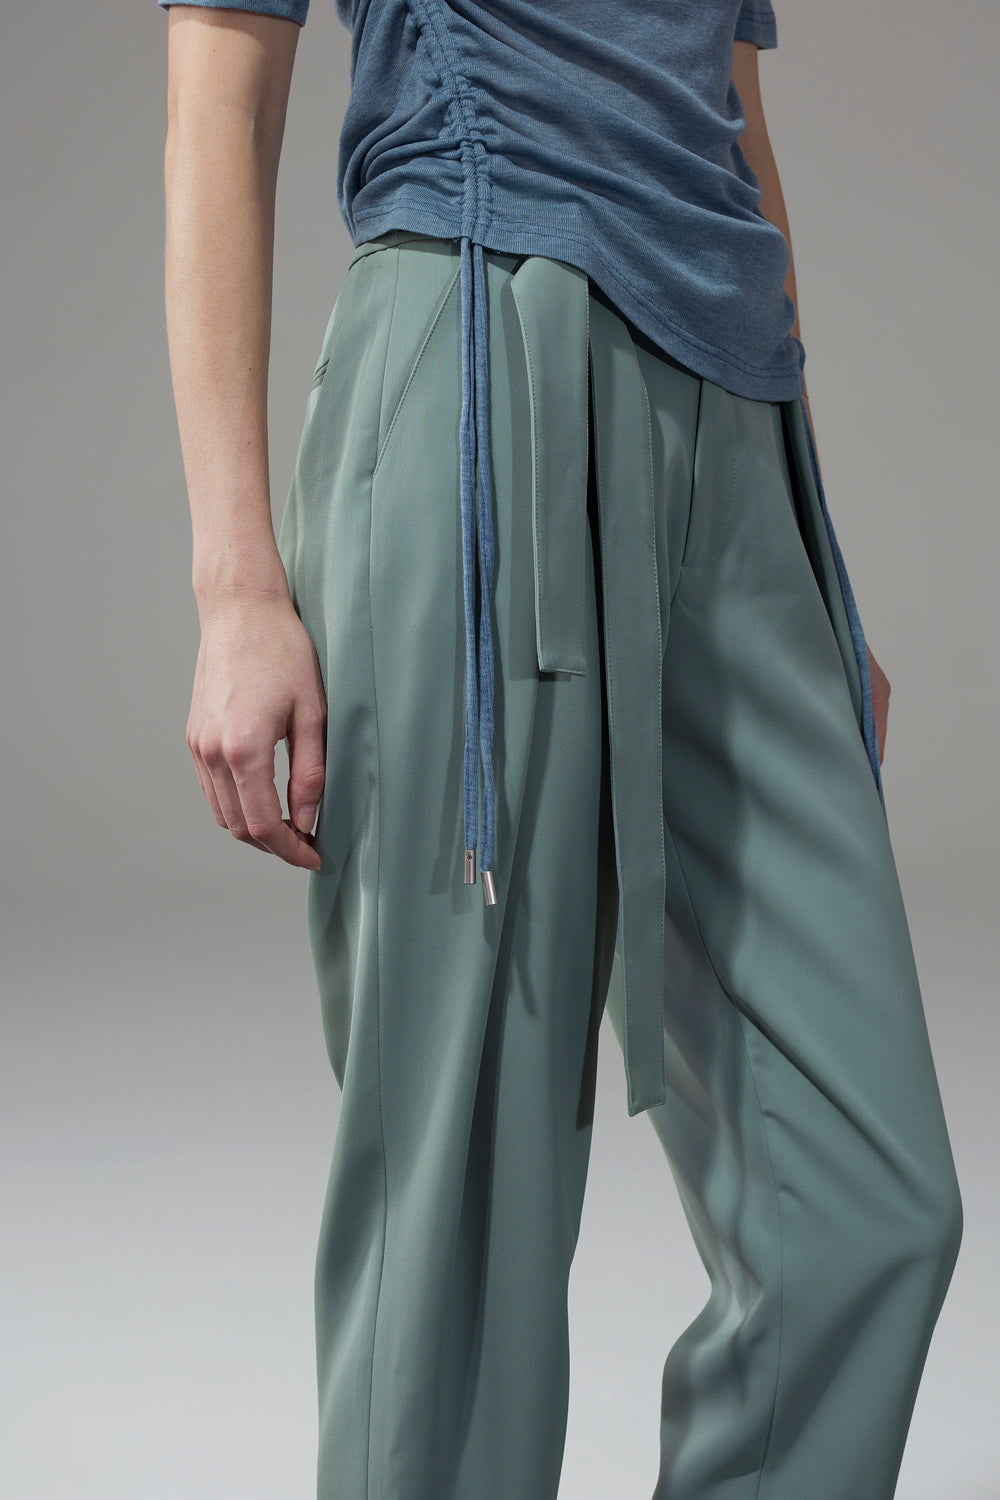 Belted Pants - Green